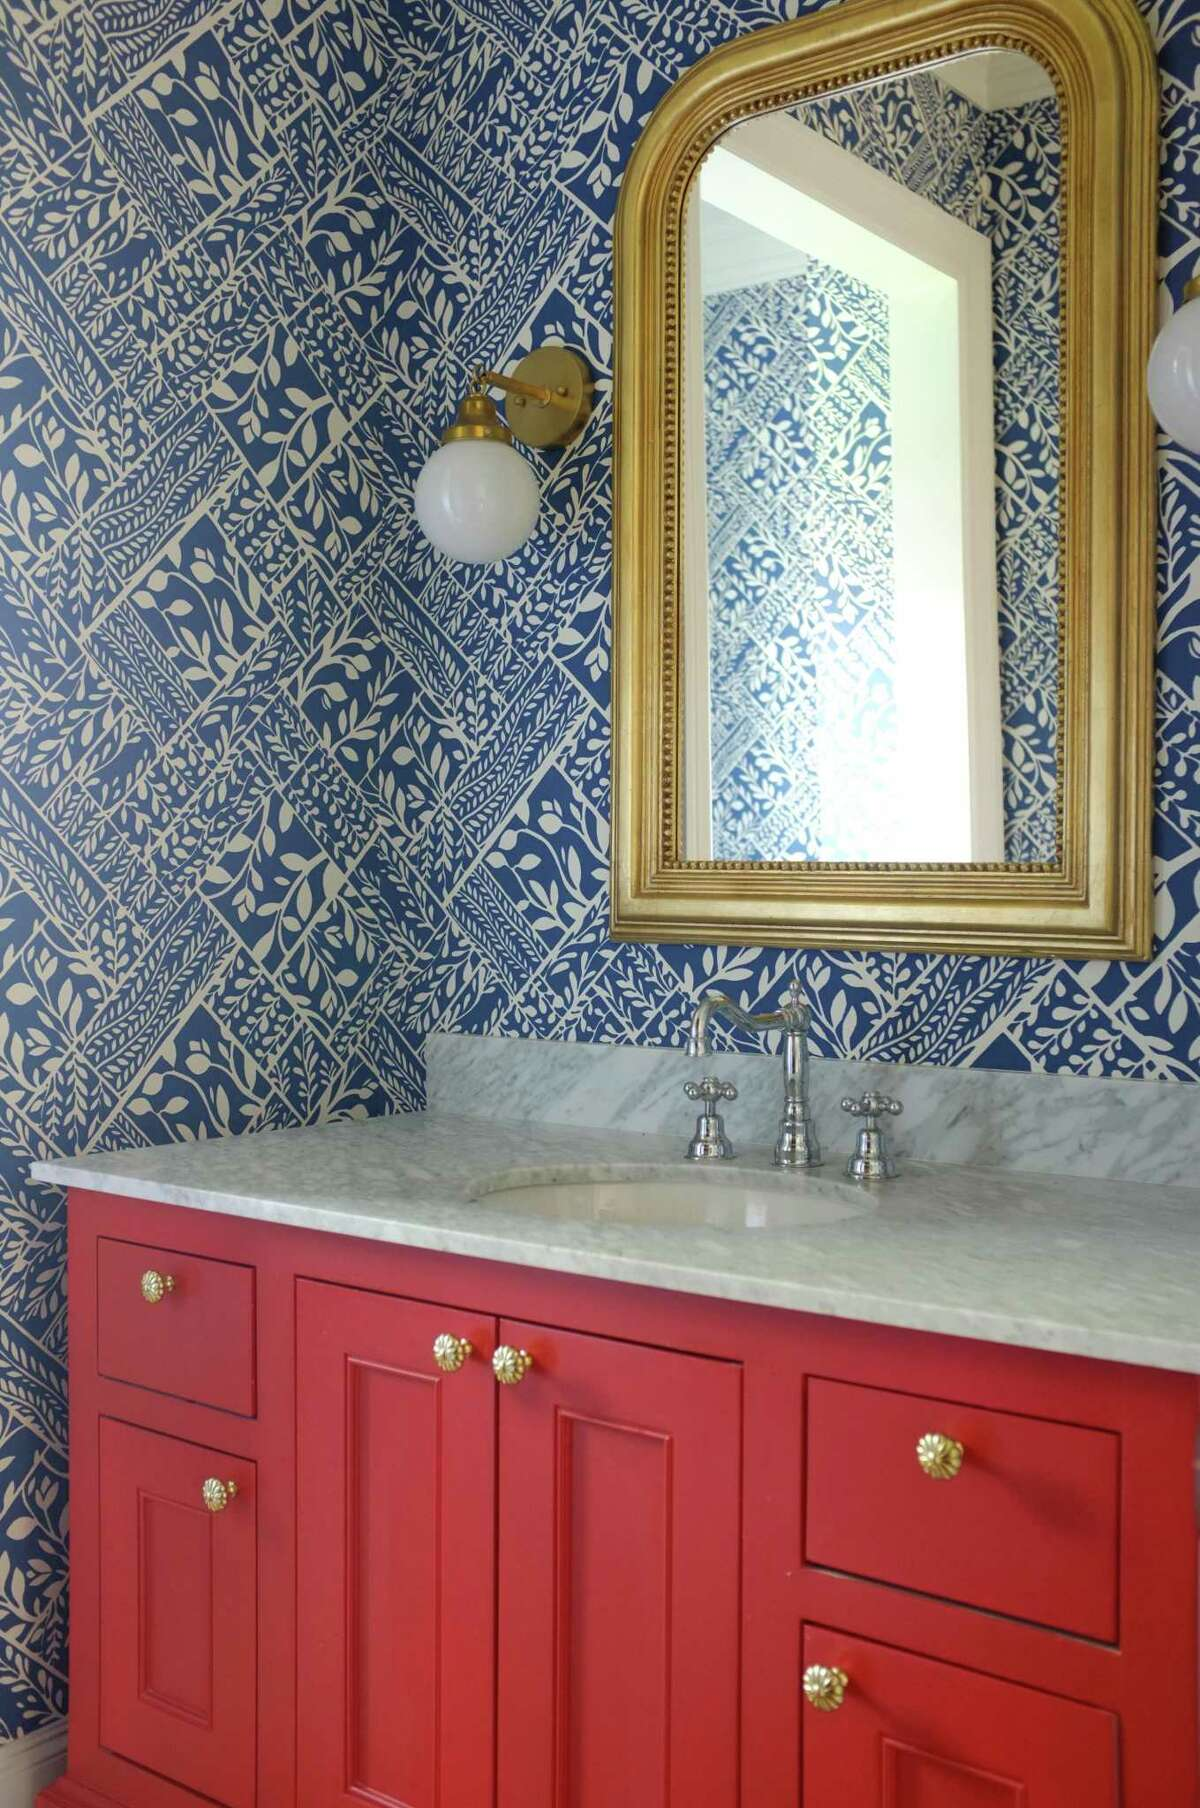 The cheerful powder bathroom has blue and white wallpaper and a coral-red vanity.